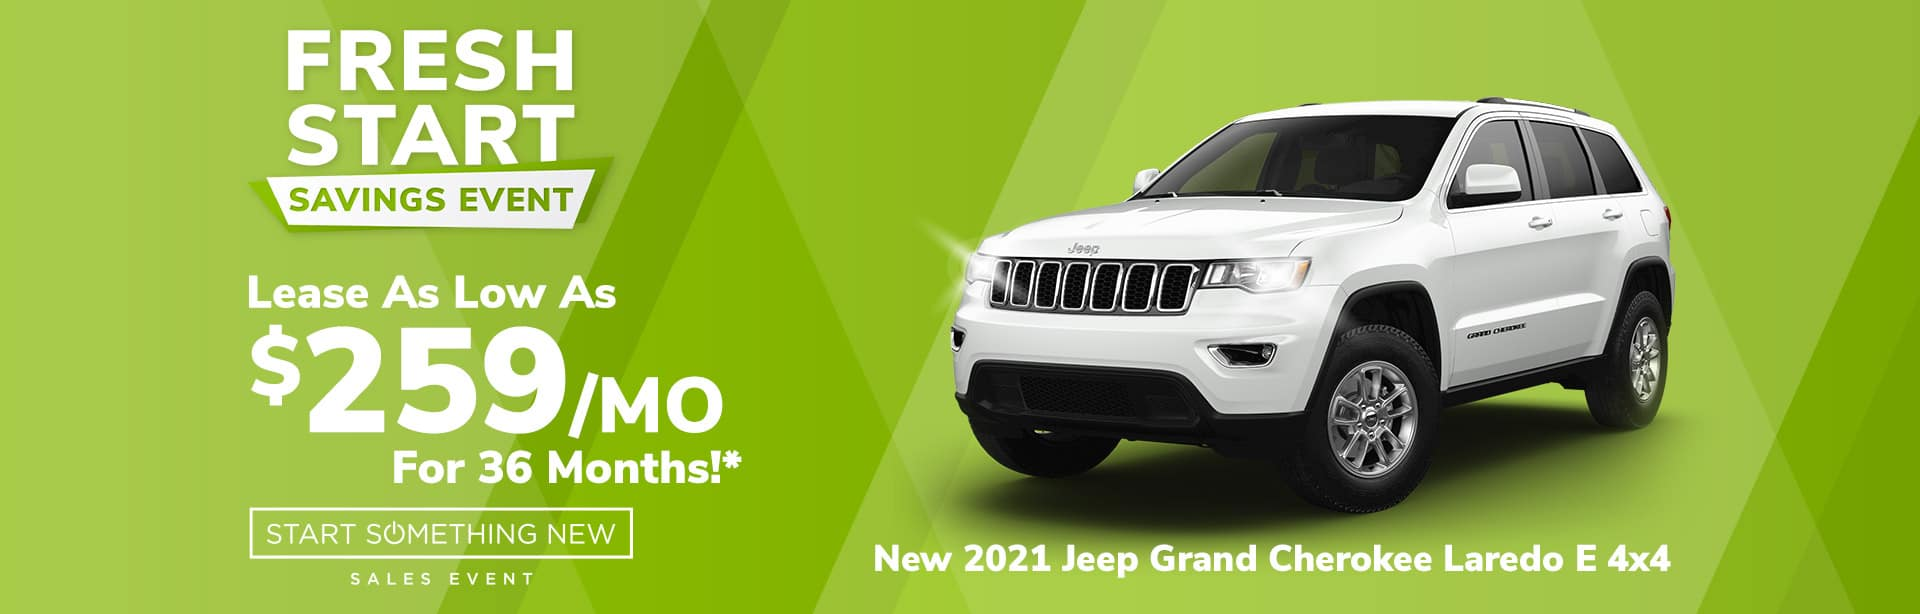 Lease a Grand Cherokee for $259 a month near Attica, Indiana